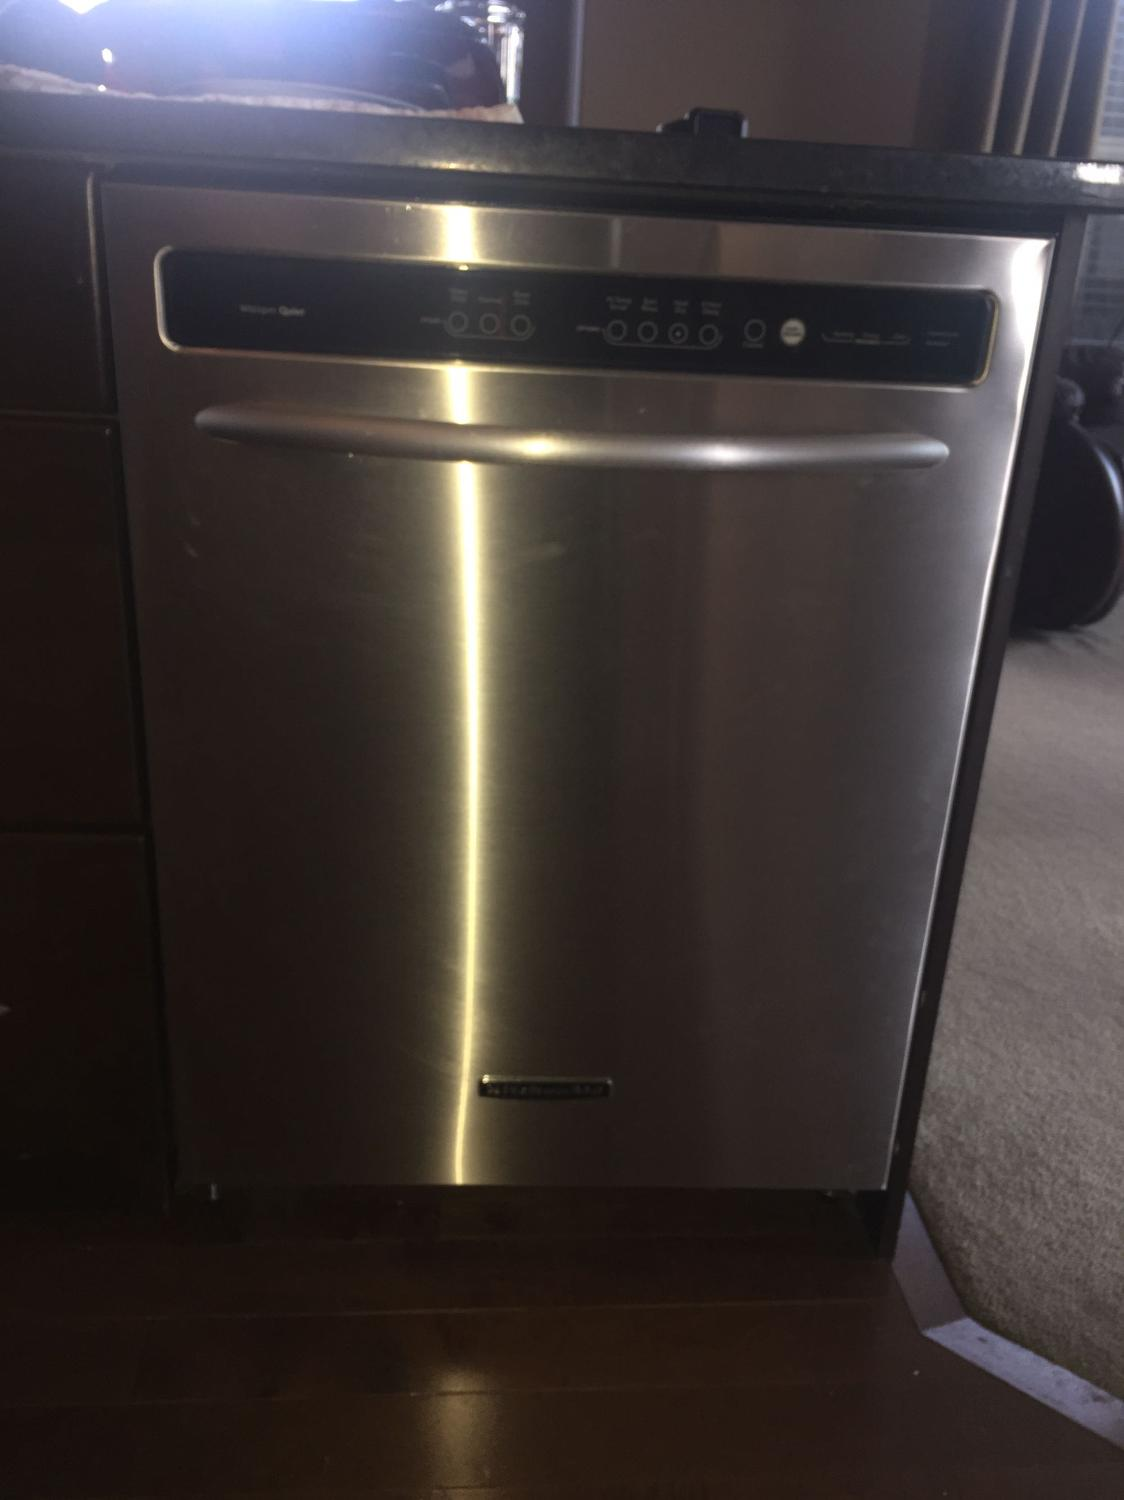 find more kitchenaid dishwasher for sale at up to 90% off